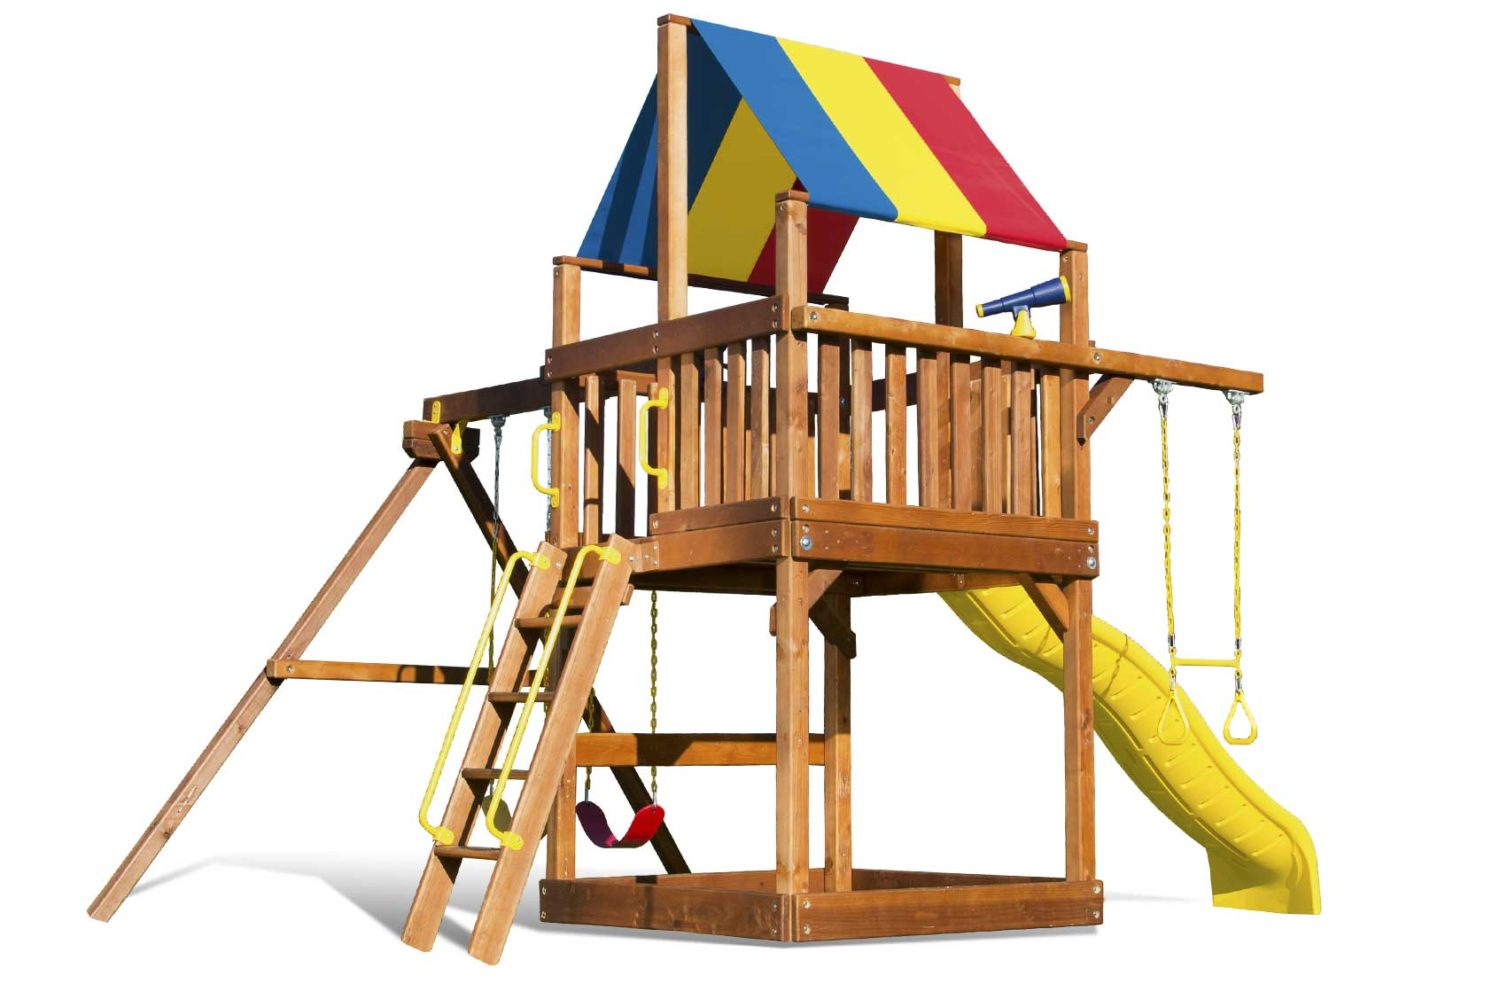 Carnival Base Clubhouse Pkg II Wooden Swing Sets